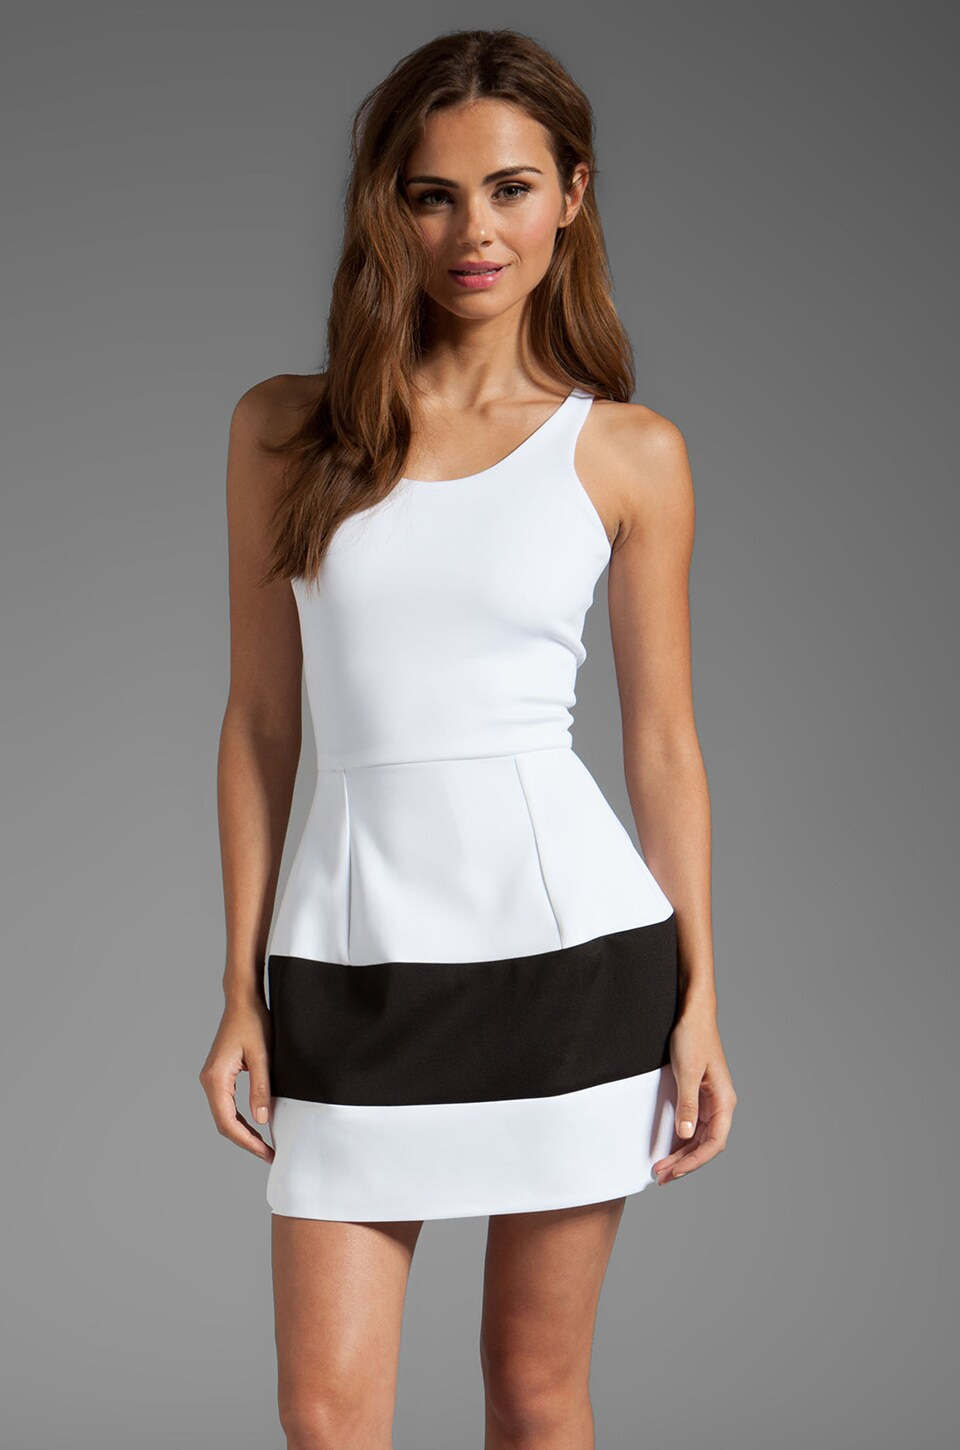 Boulee Marilyn Contrast Dress in White